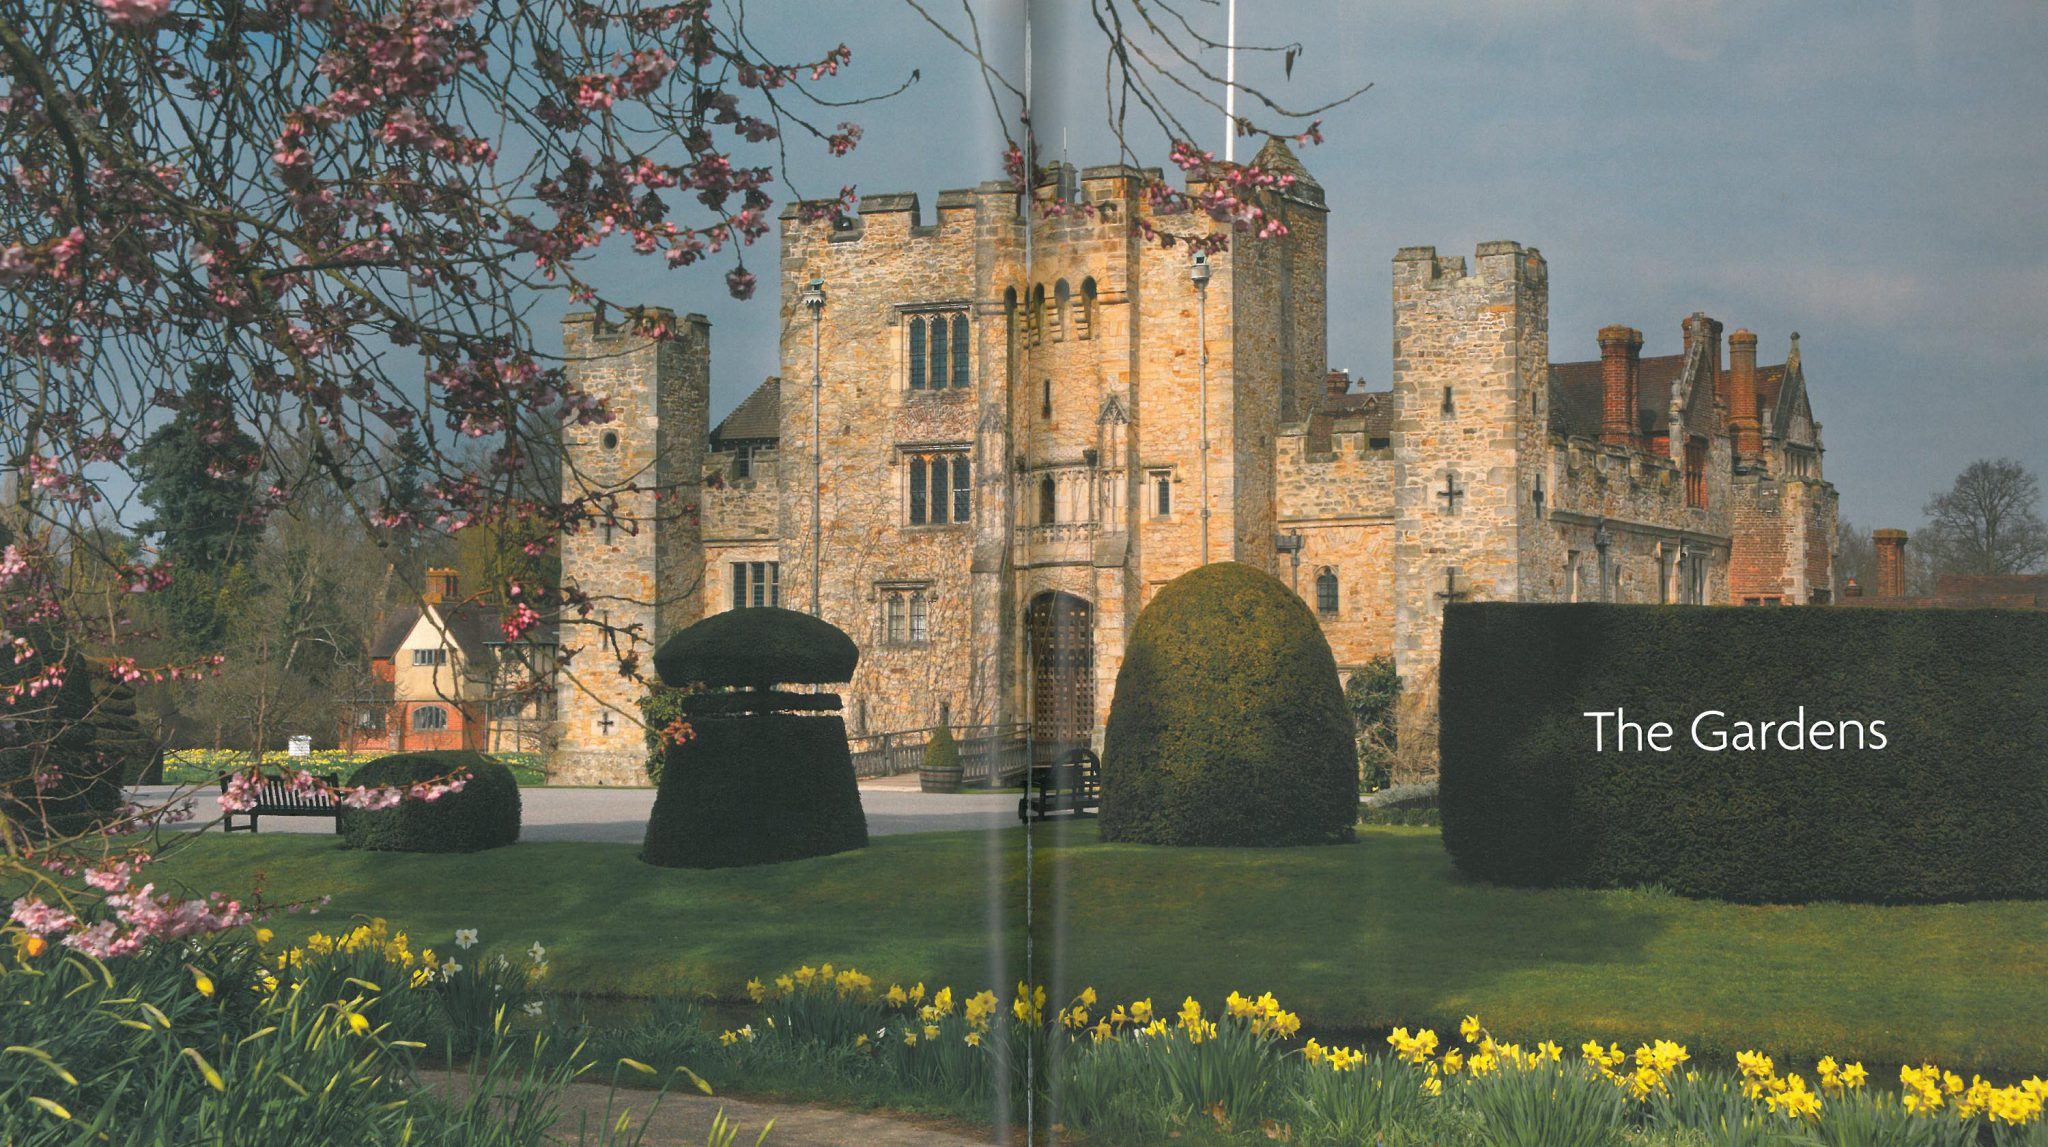 The Gardens directly adjacent to Hever Castle. Image courtesy of Hever Castle.